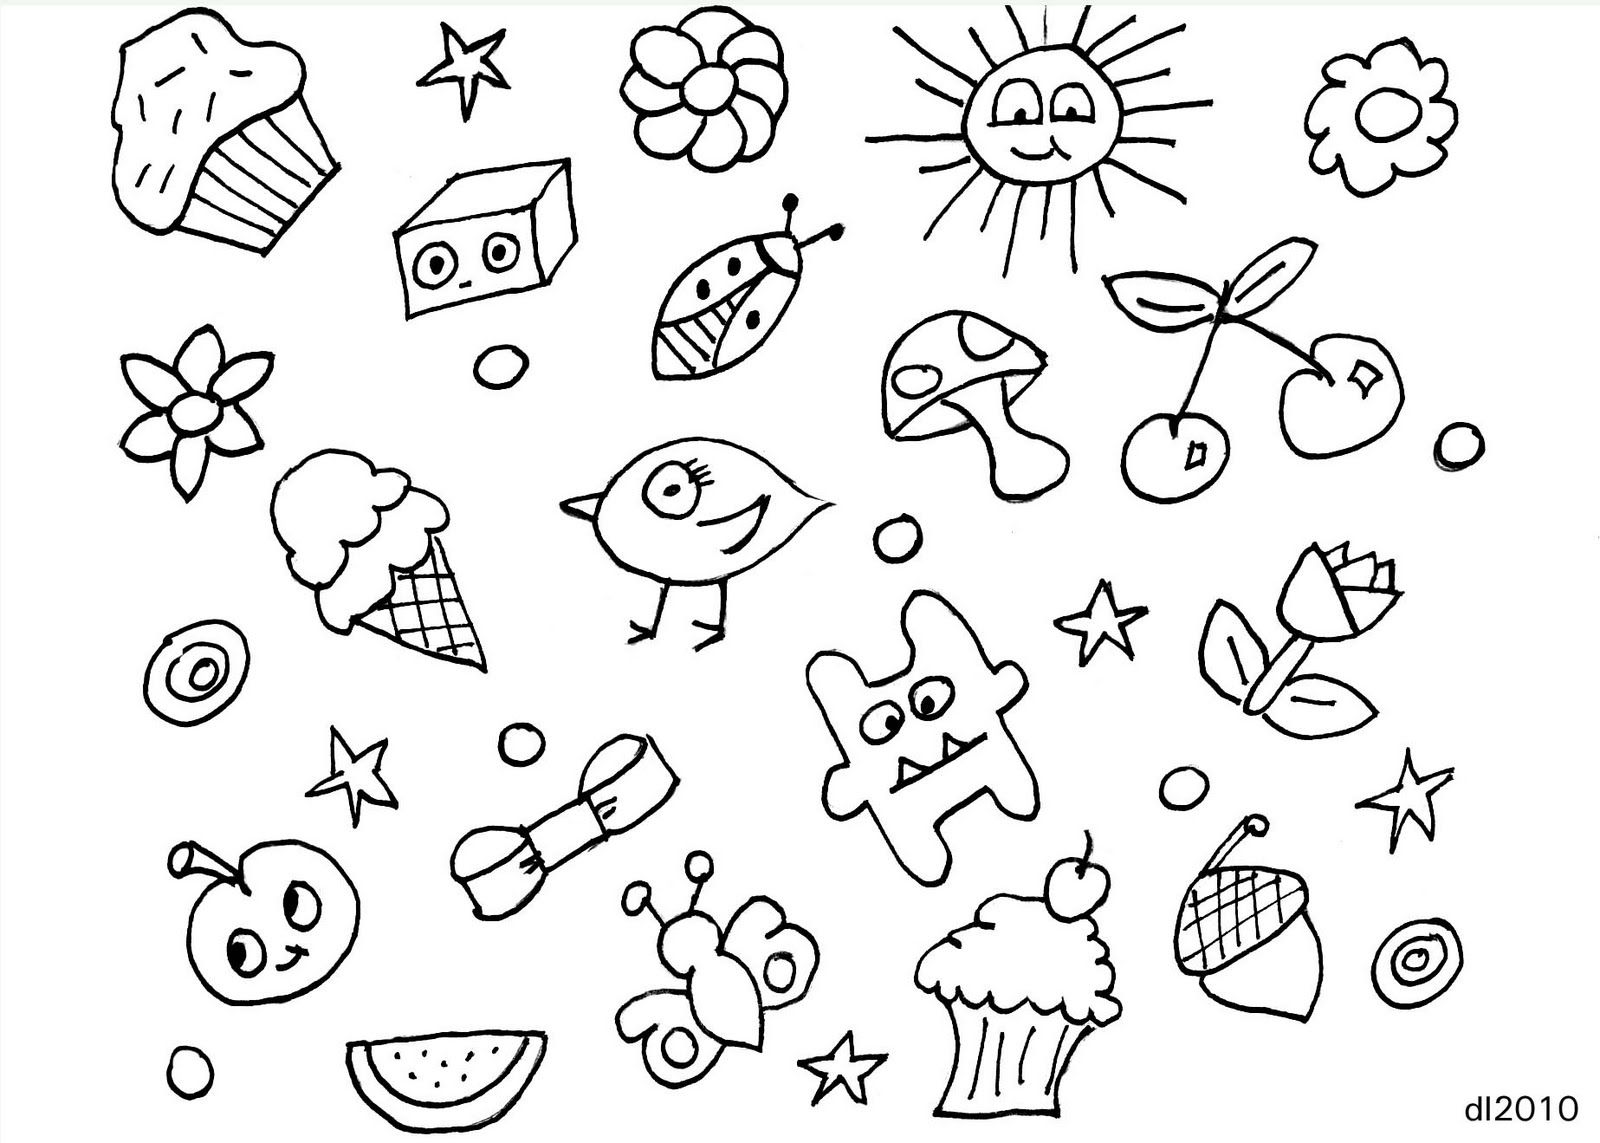 more basic doodles easy for kids oodles of doodles